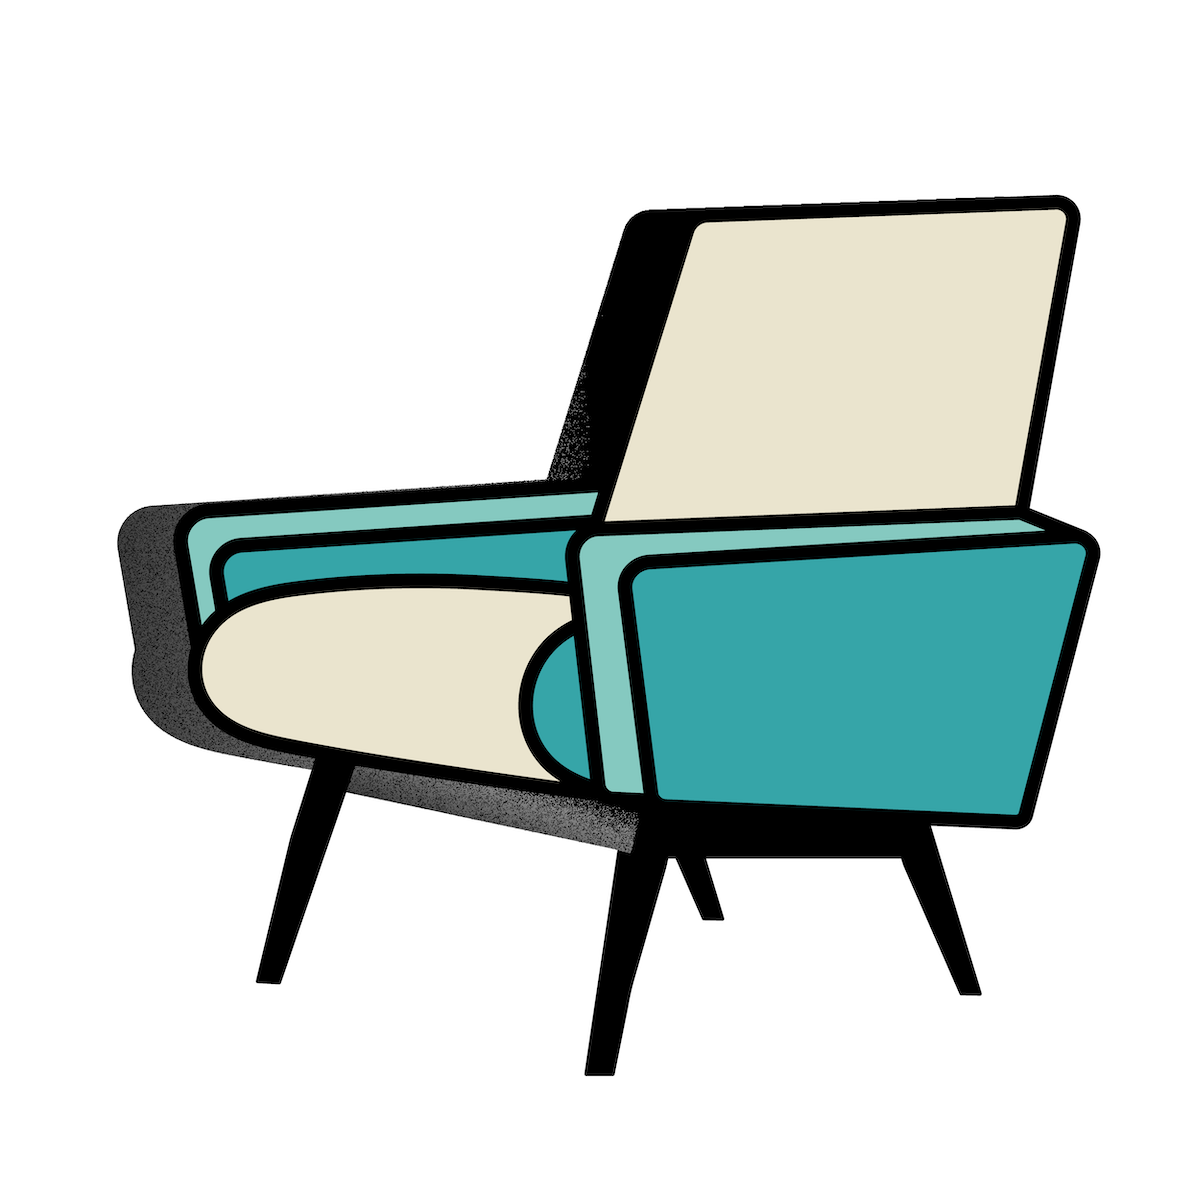 Retro teal chair illustration